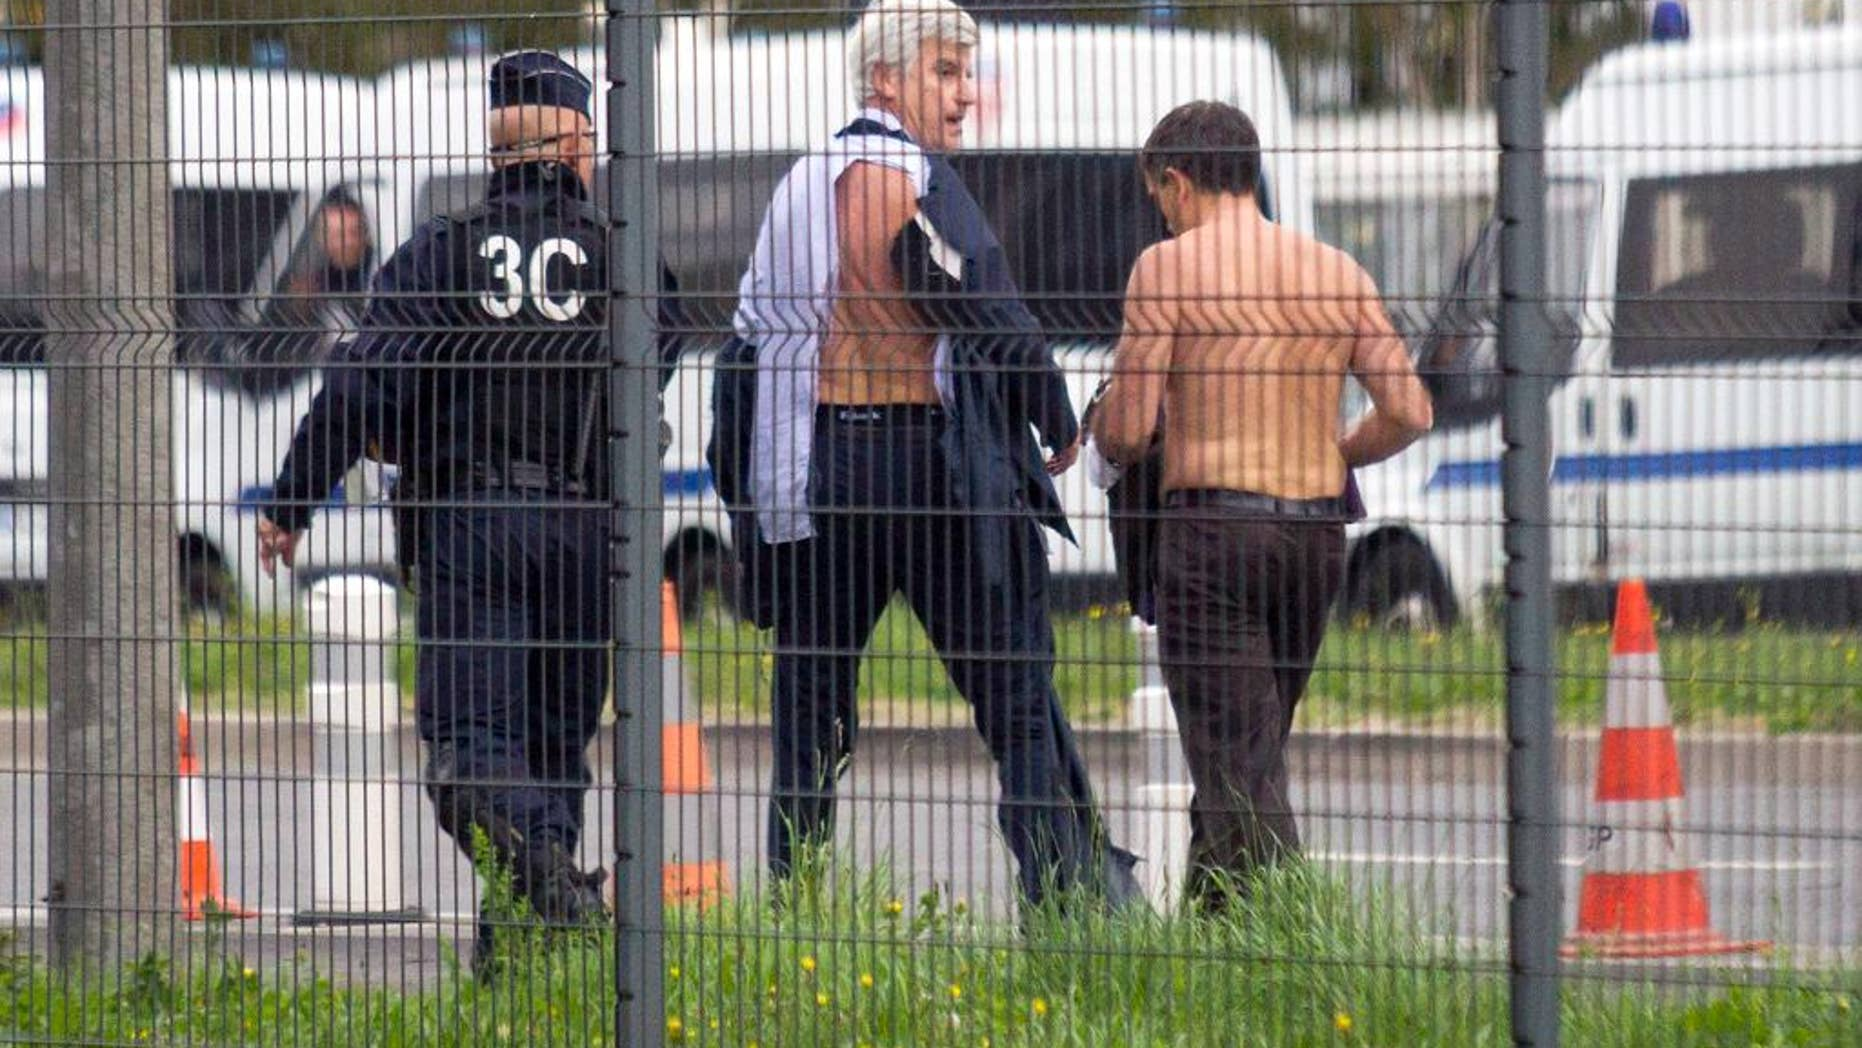 FILE - In this Monday, Oct. 5, 2015 file photo, Air France director of Human Resources Xavier Broseta, right, and Air France assistant director of long-haul flights Pierre Plissonnier, center, are protected by a police officer as they flee Air France headquarters at Roissy Airport, north of Paris, France, after scuffles with union activists. A group of former Air France workers is going on trial for allegedly taking part in violence that erupted during a union protest last year at the airline's headquarters and left two executives fleeing over a fence with their shirts ripped off. (AP Photo/Jacques Brinon, File)